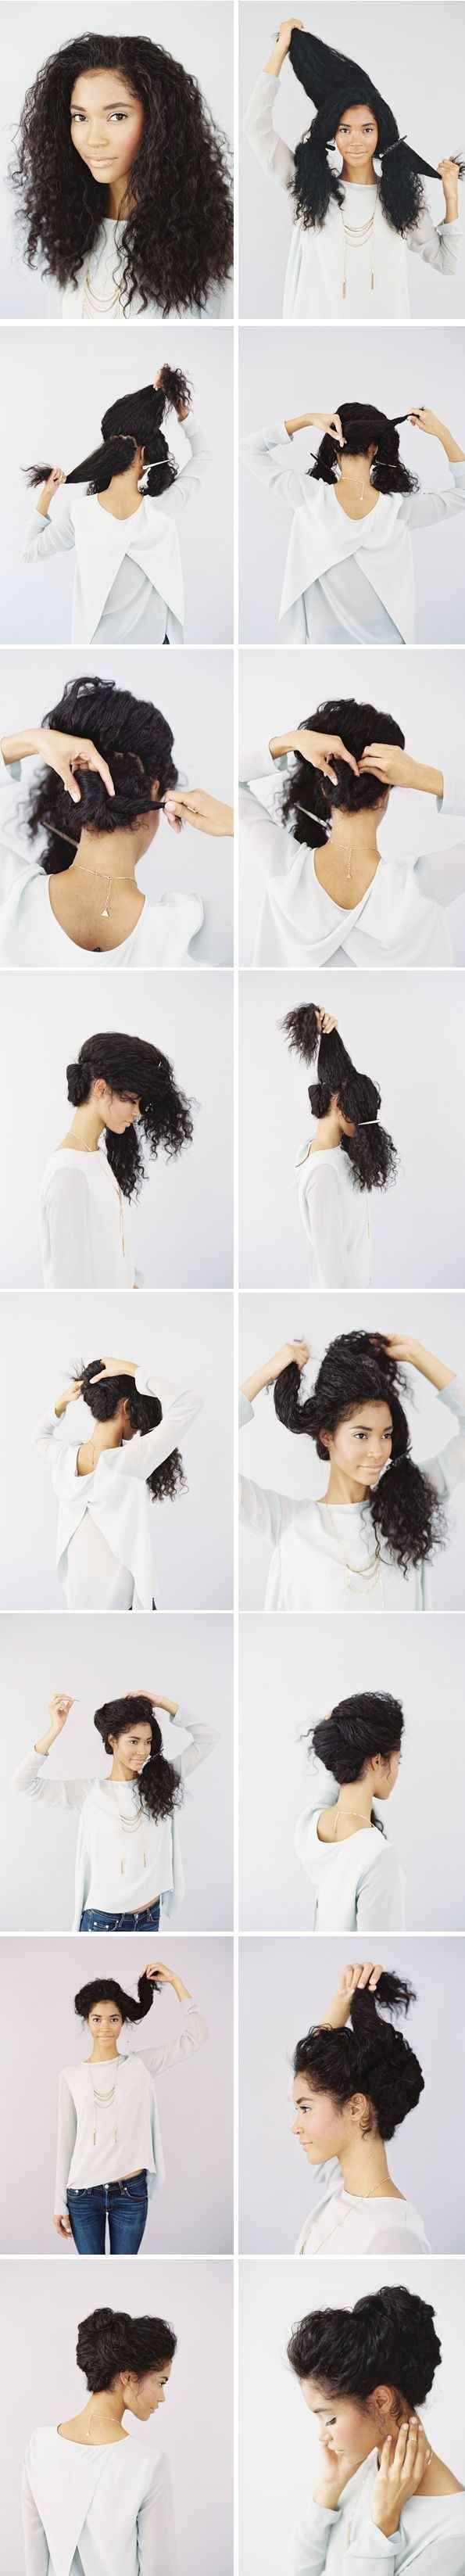 17 Incredibly Pretty Styles For Naturally Curly Hair | Naturally ...